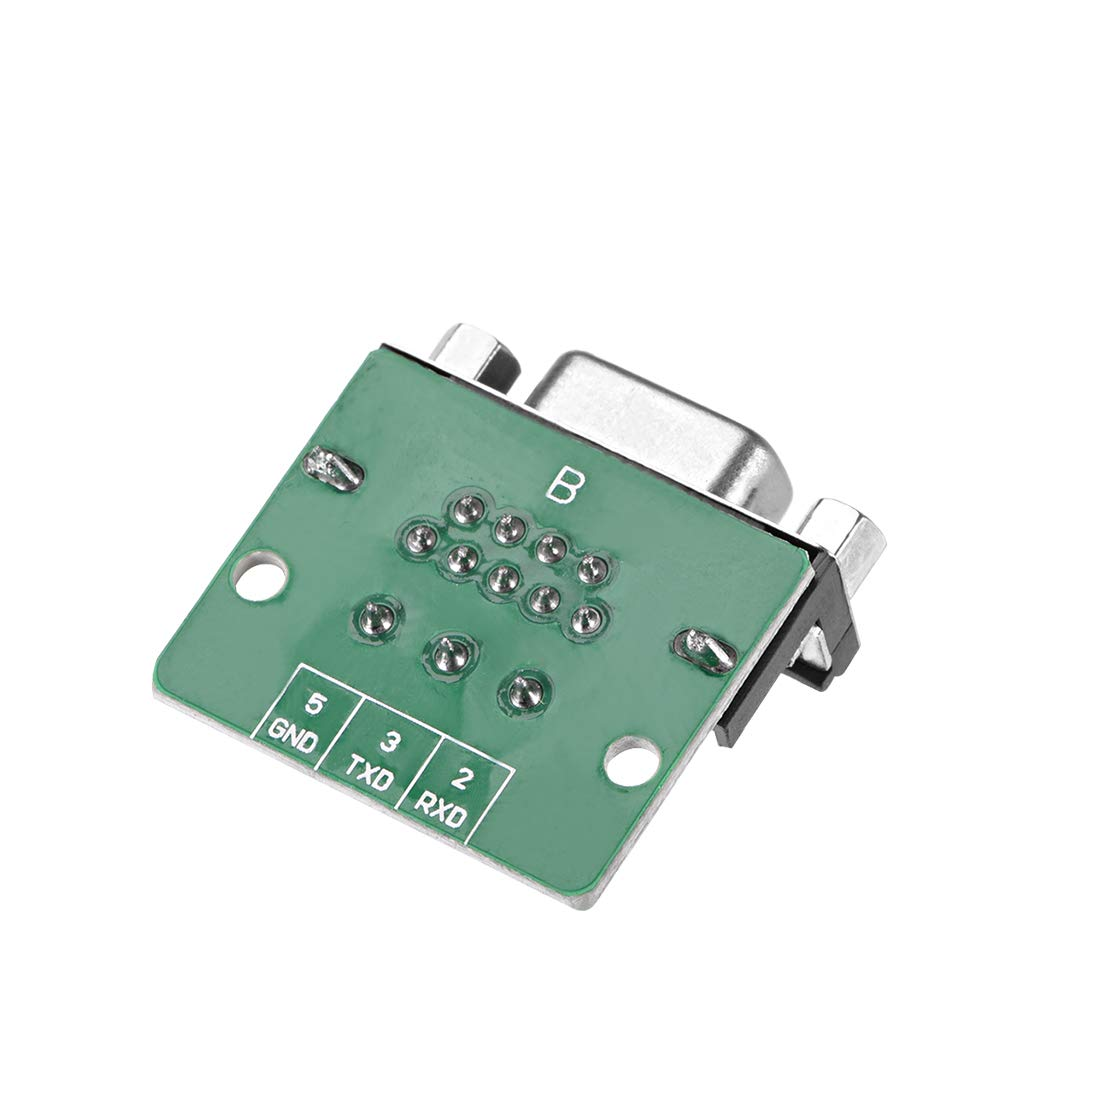 sourcing map D-sub DB9 Breakout Board Connector 9 Pin 2 Row Female Port Solderless Terminal Block Adapter with Positioning Nuts